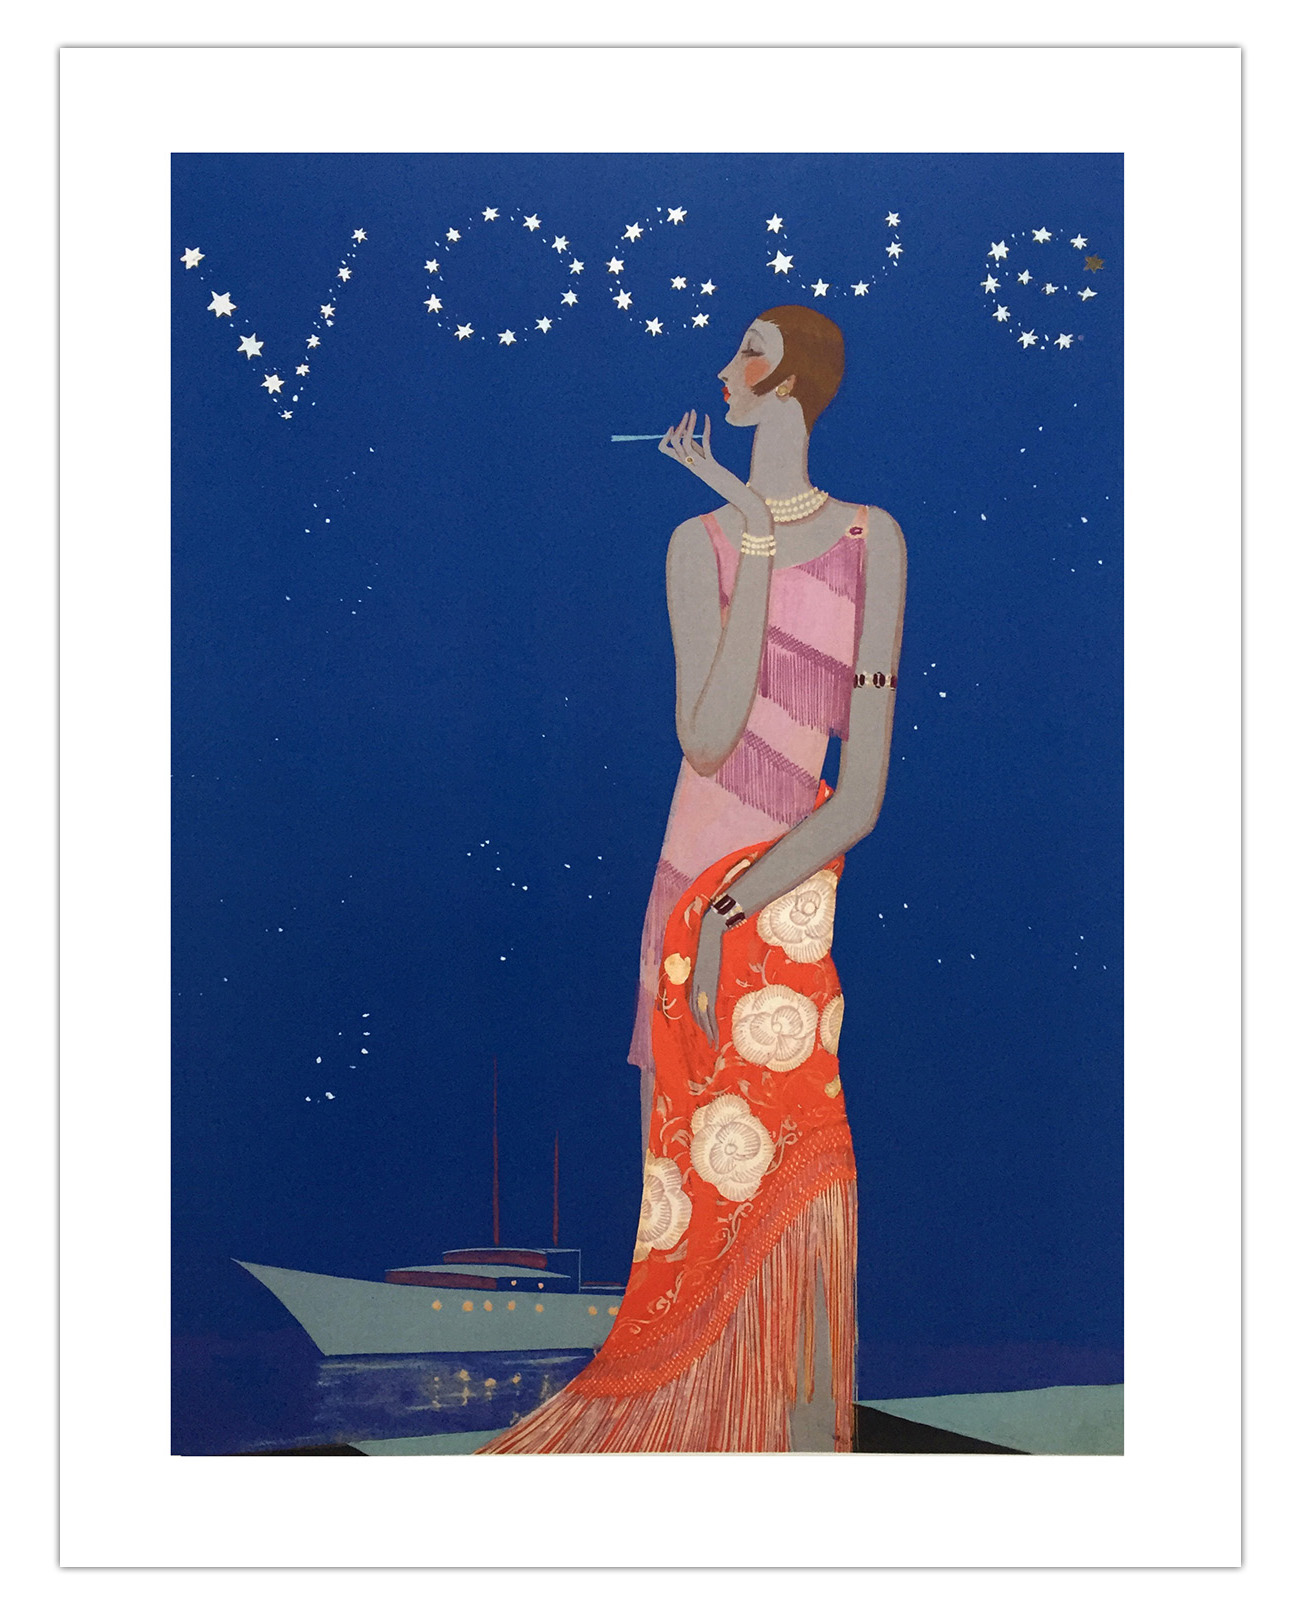 Print I purchased at the exhibition. Image is 'Vogue Constellation' illustrated by Eduardo Benito in 1926